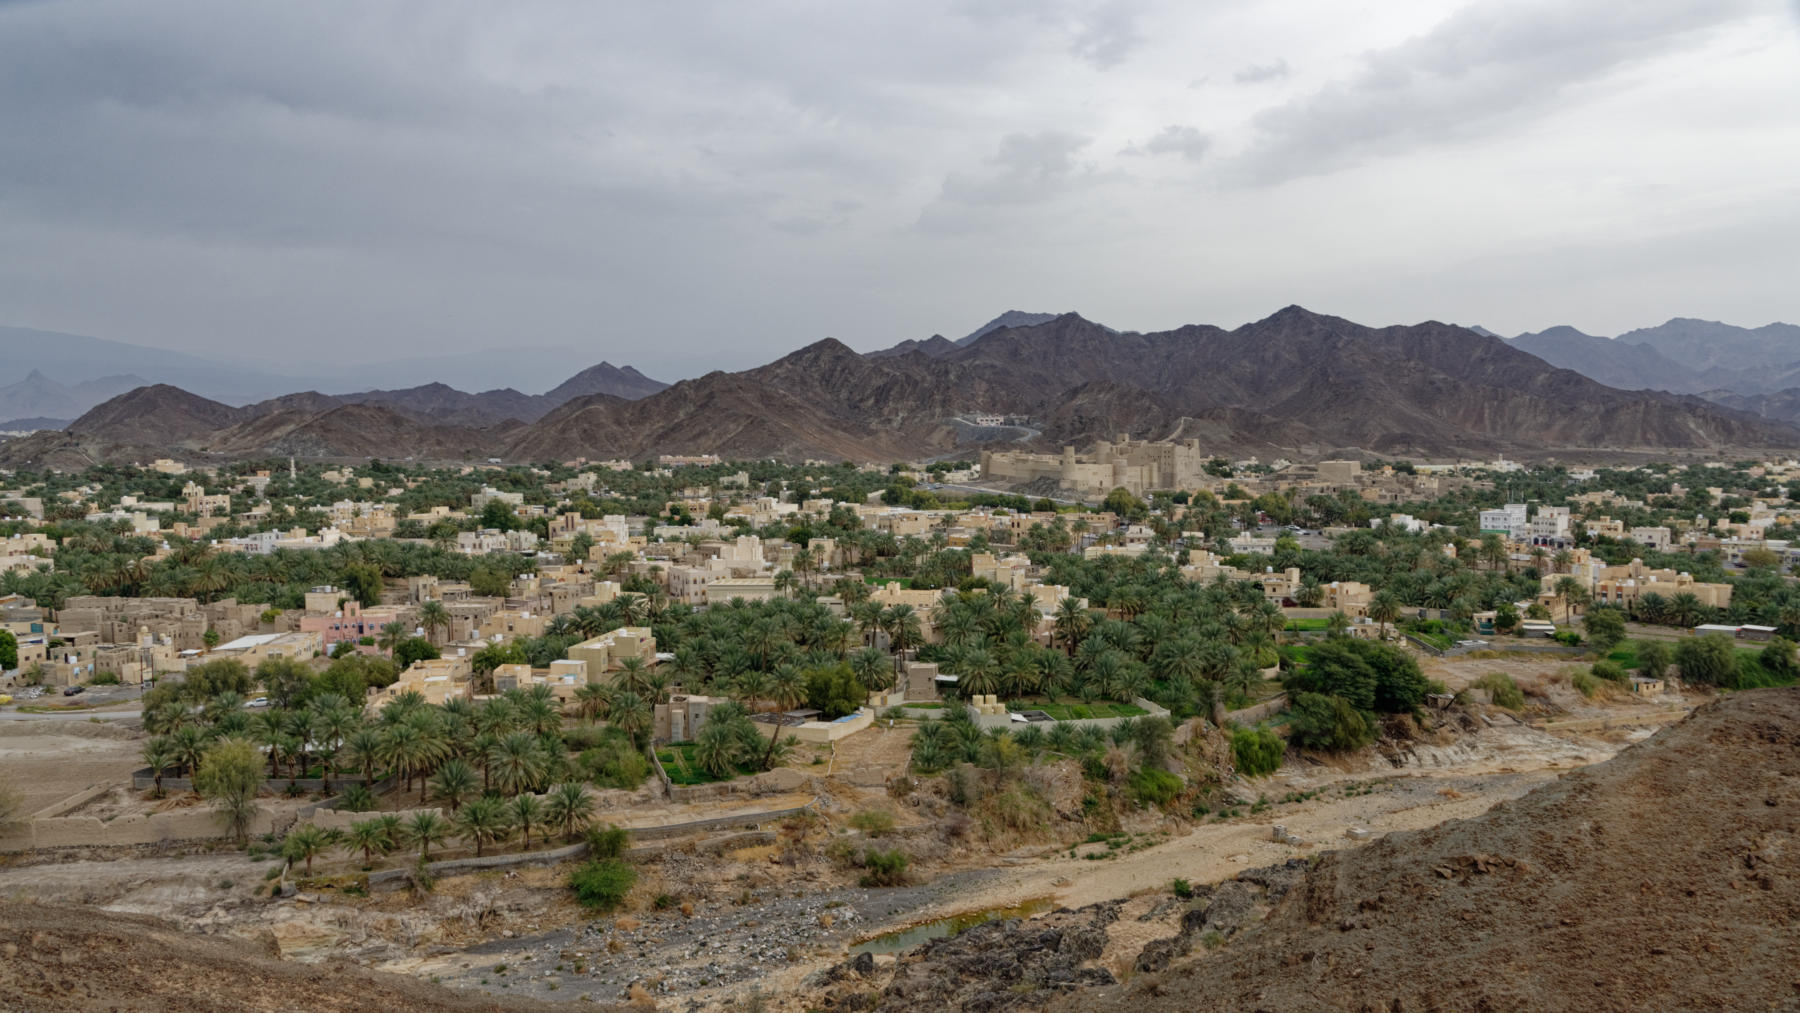 View over Bahla, Oman